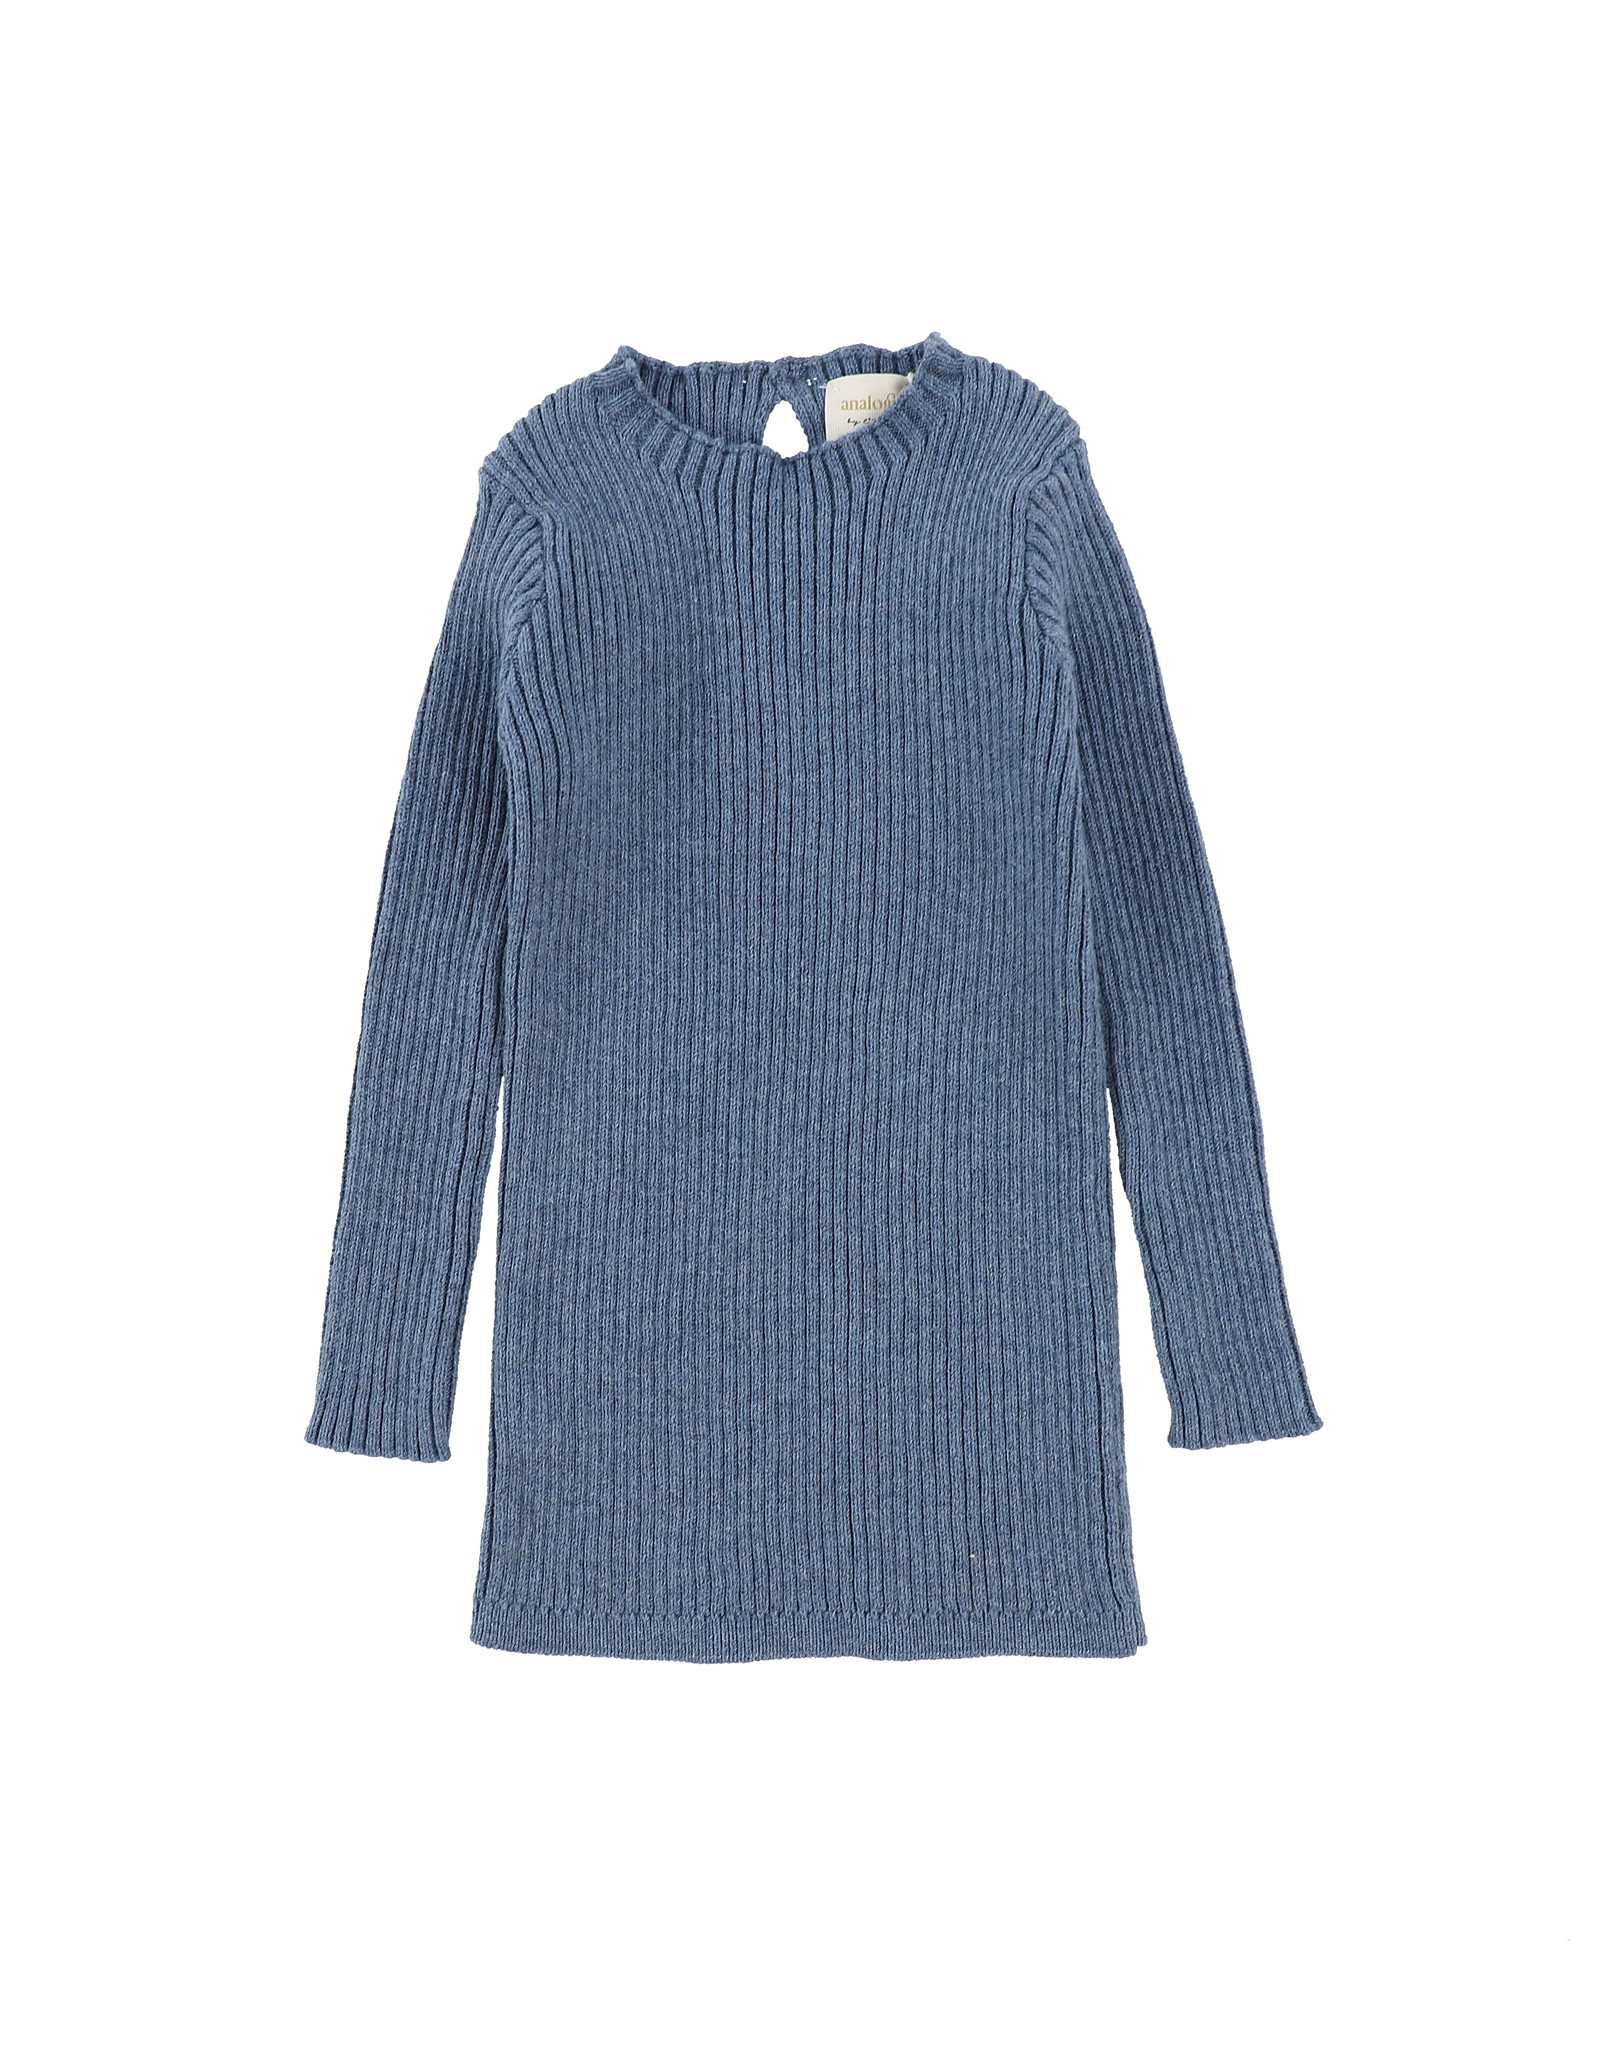 Analogie SS20 Long Sleeve Knit Sweater